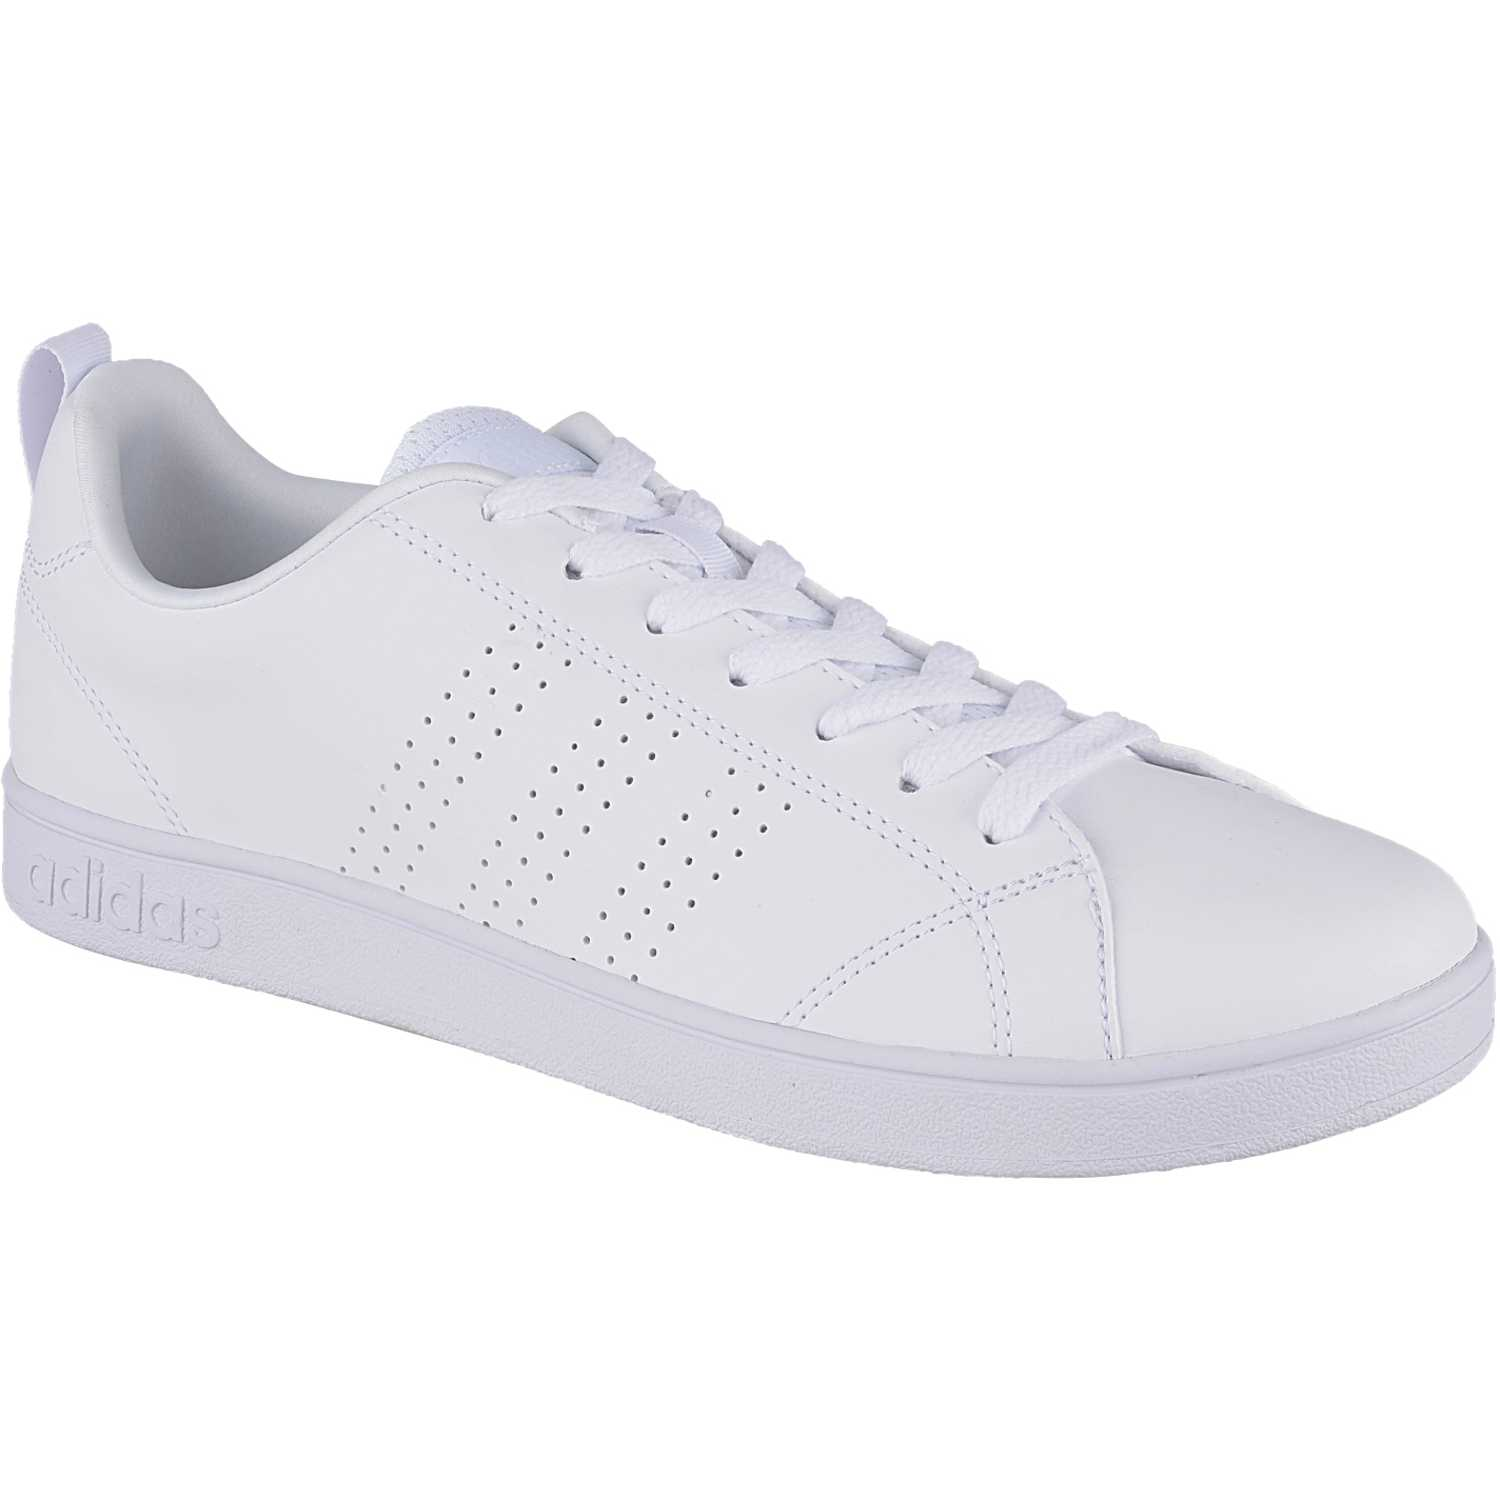 adidas NEO vs advantage cl Blanco Walking | platanitos.com